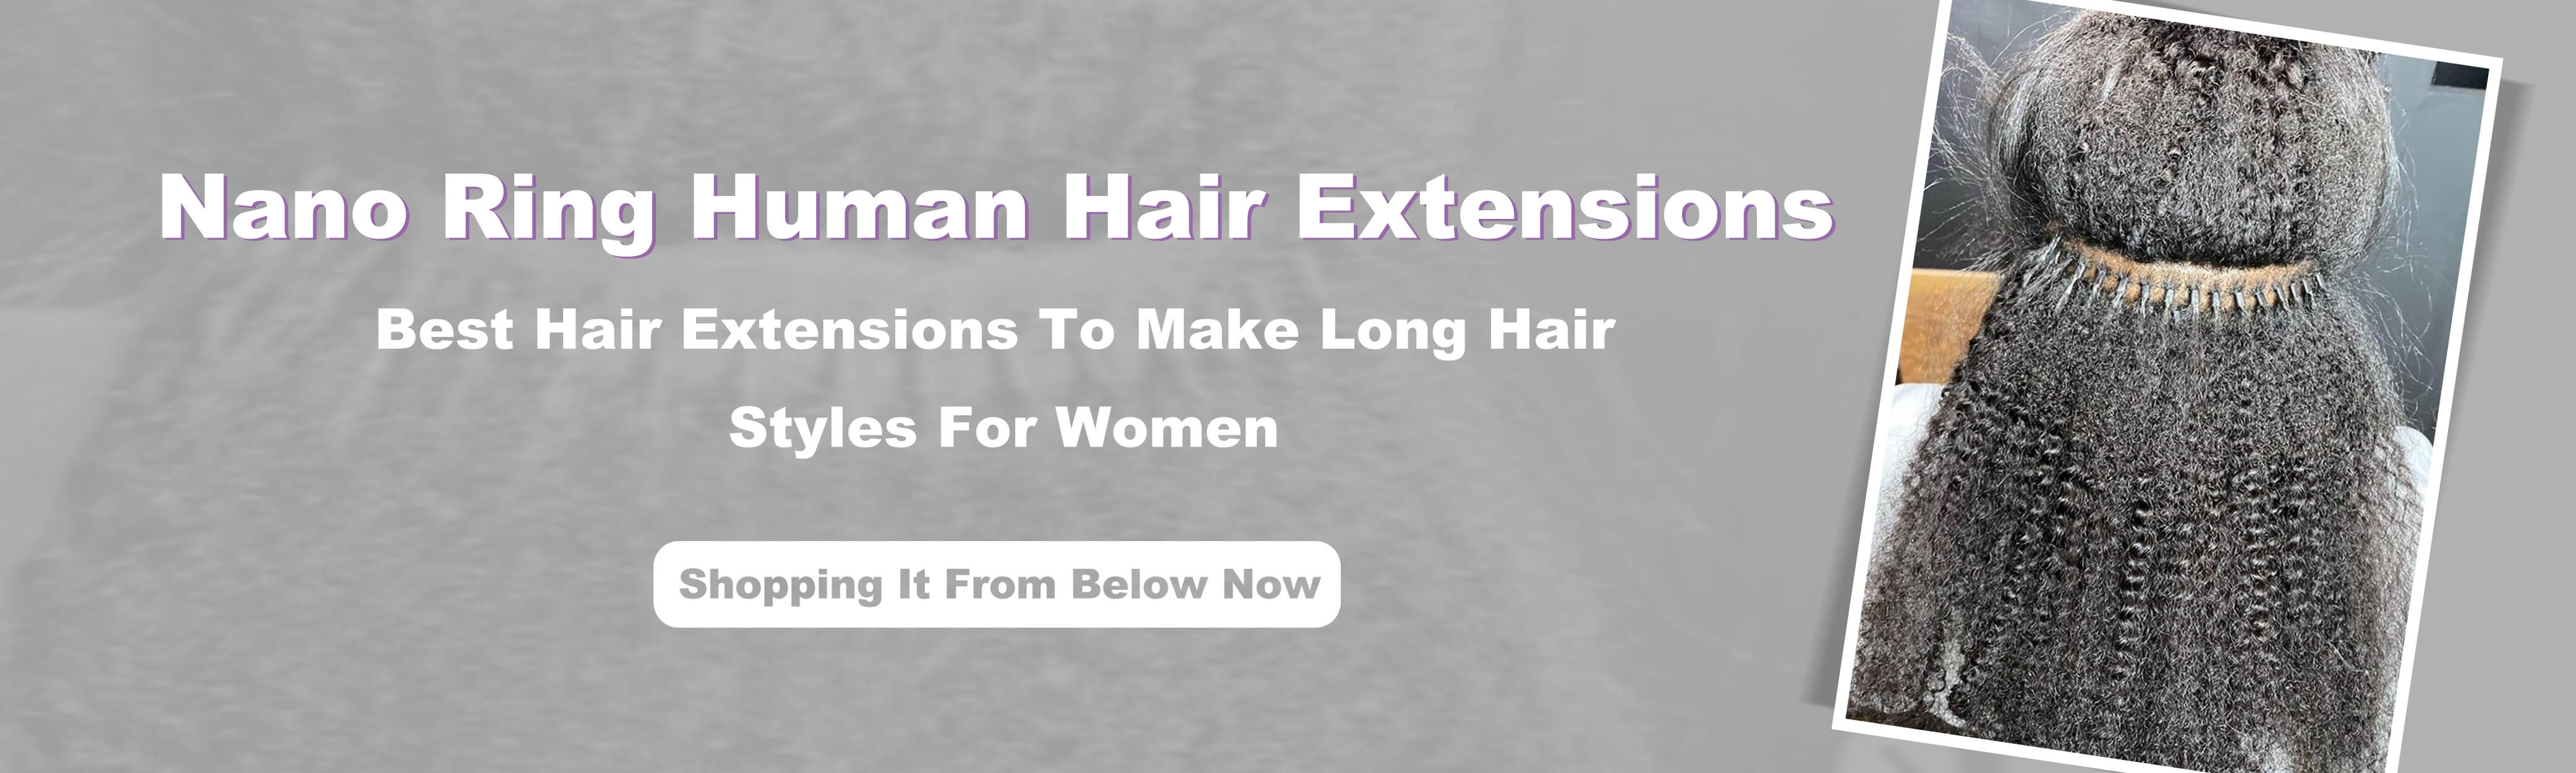 Micro Ring Hair Extensions For Women